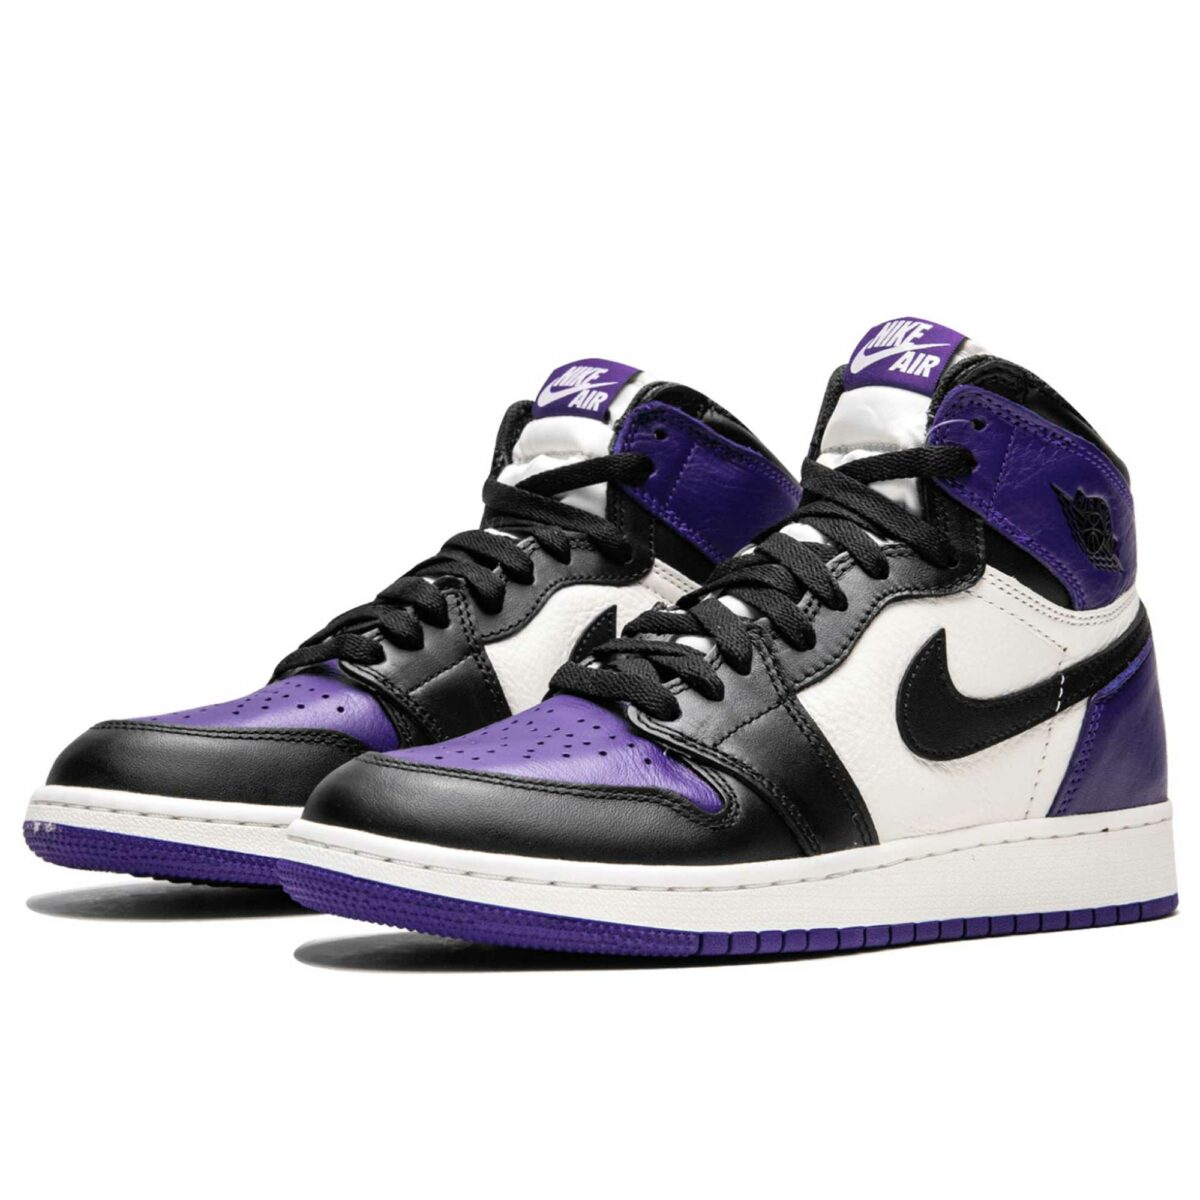 nike air Jordan 1 retro mid court purple 575441_501 купить